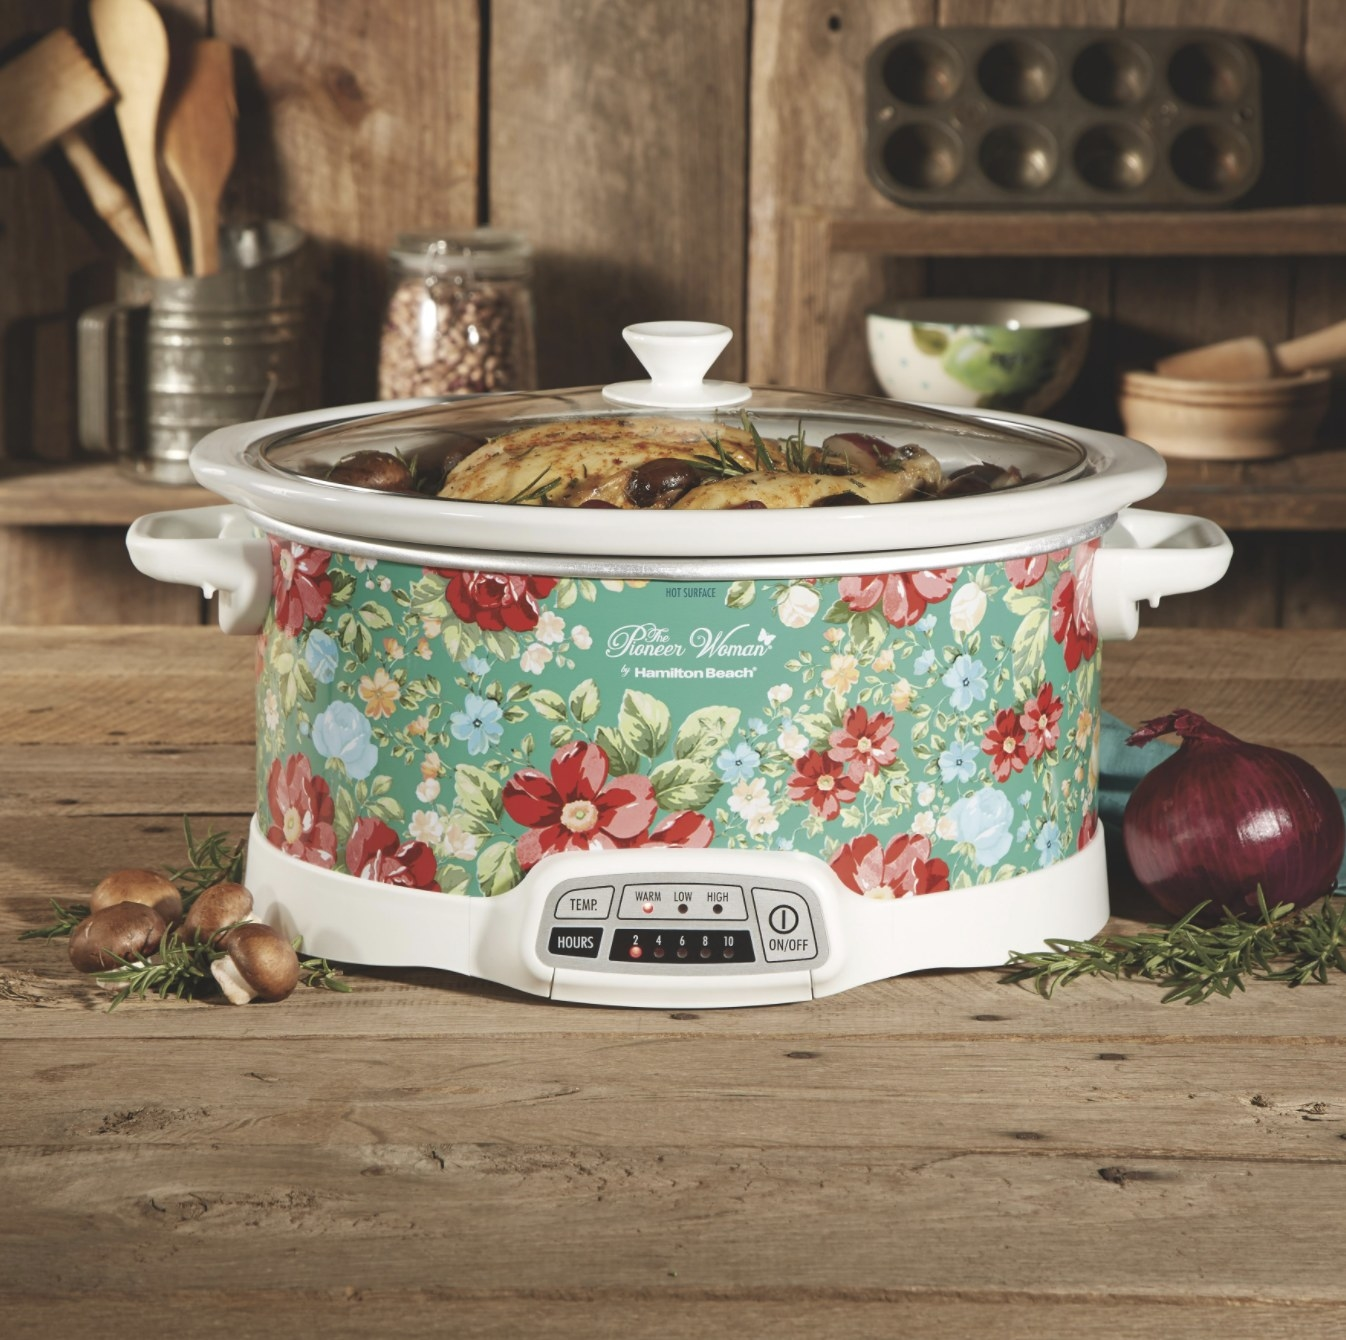 The slow cooker with a floral pattern on it